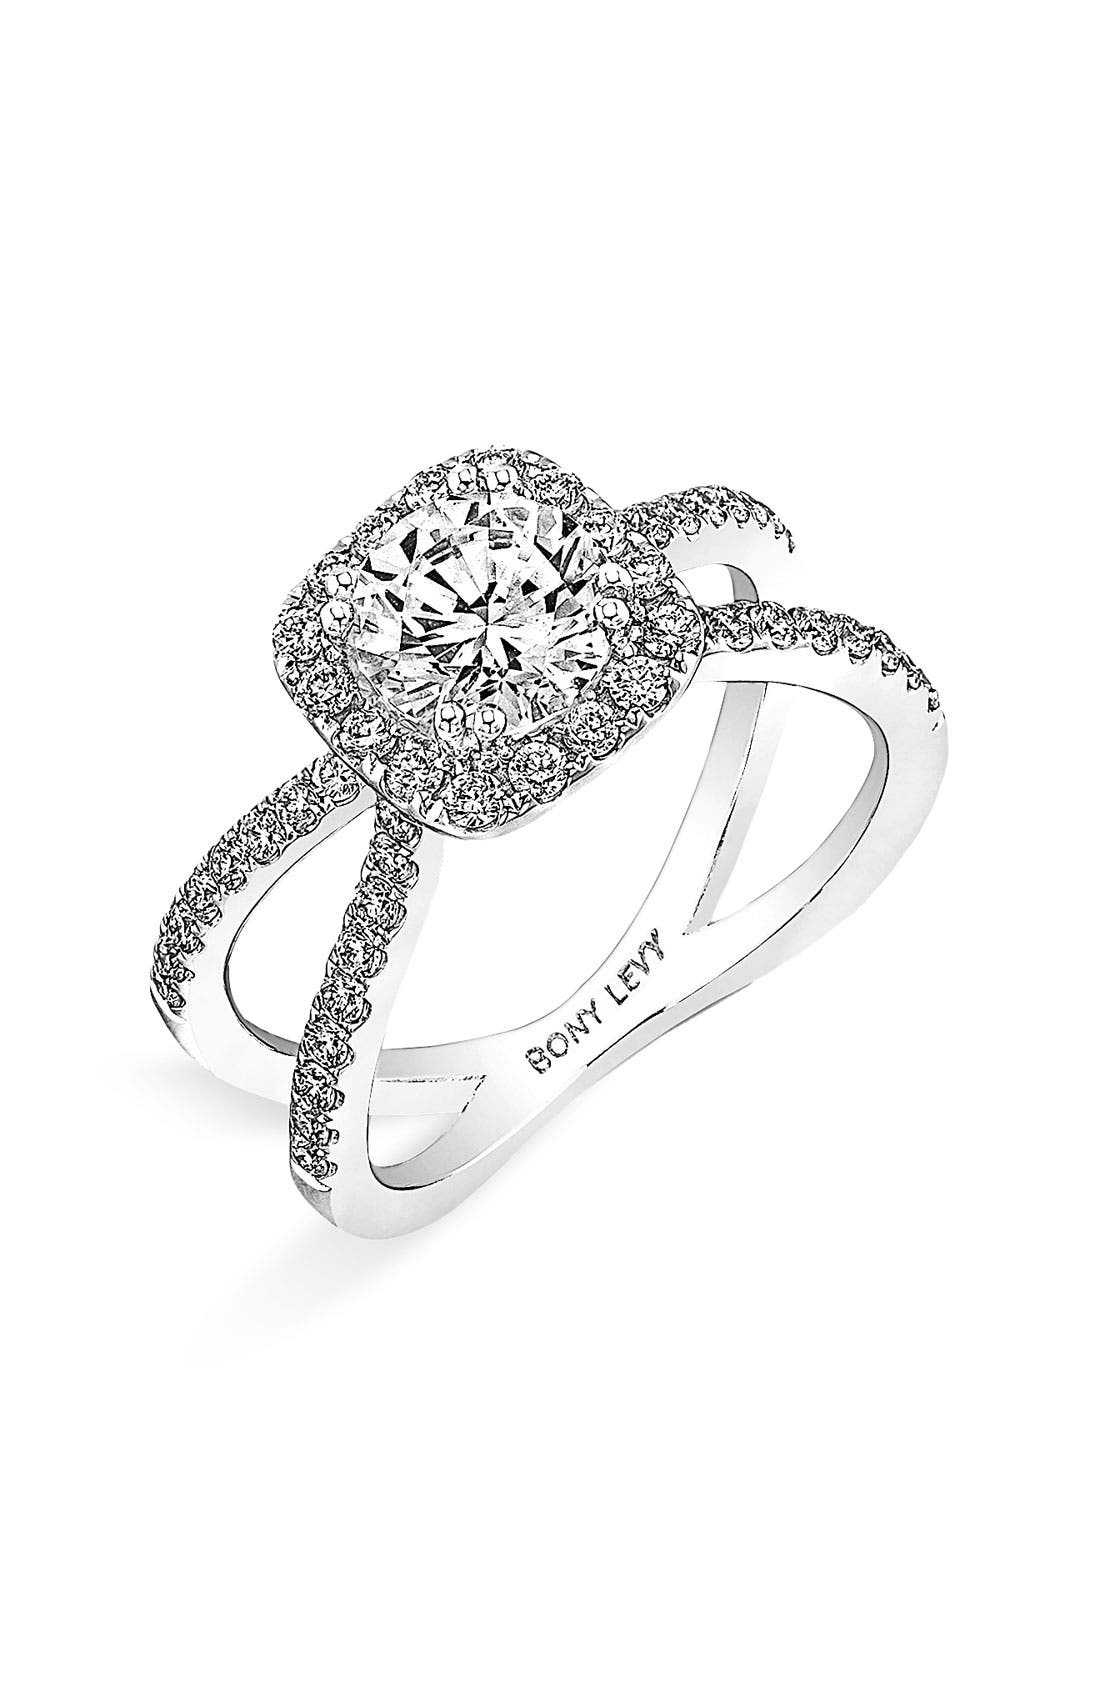 Alternate Image 1 Selected - Bony Levy Crisscross Pavé Diamond Engagement Ring Setting (Nordstrom Exclusive)